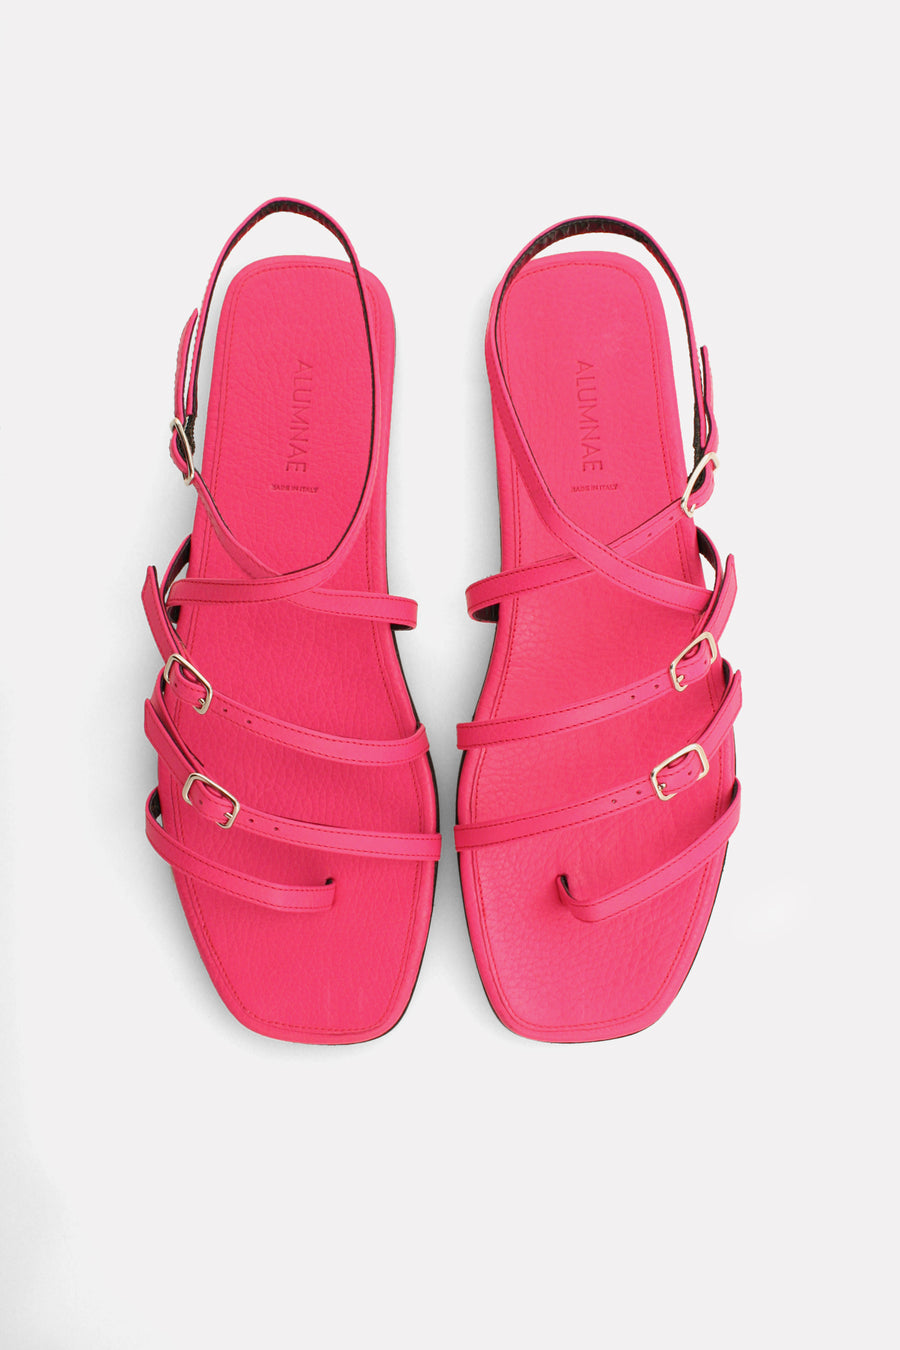 Multi Strap Ankle Wrap Thong Sandal Bright Pink.